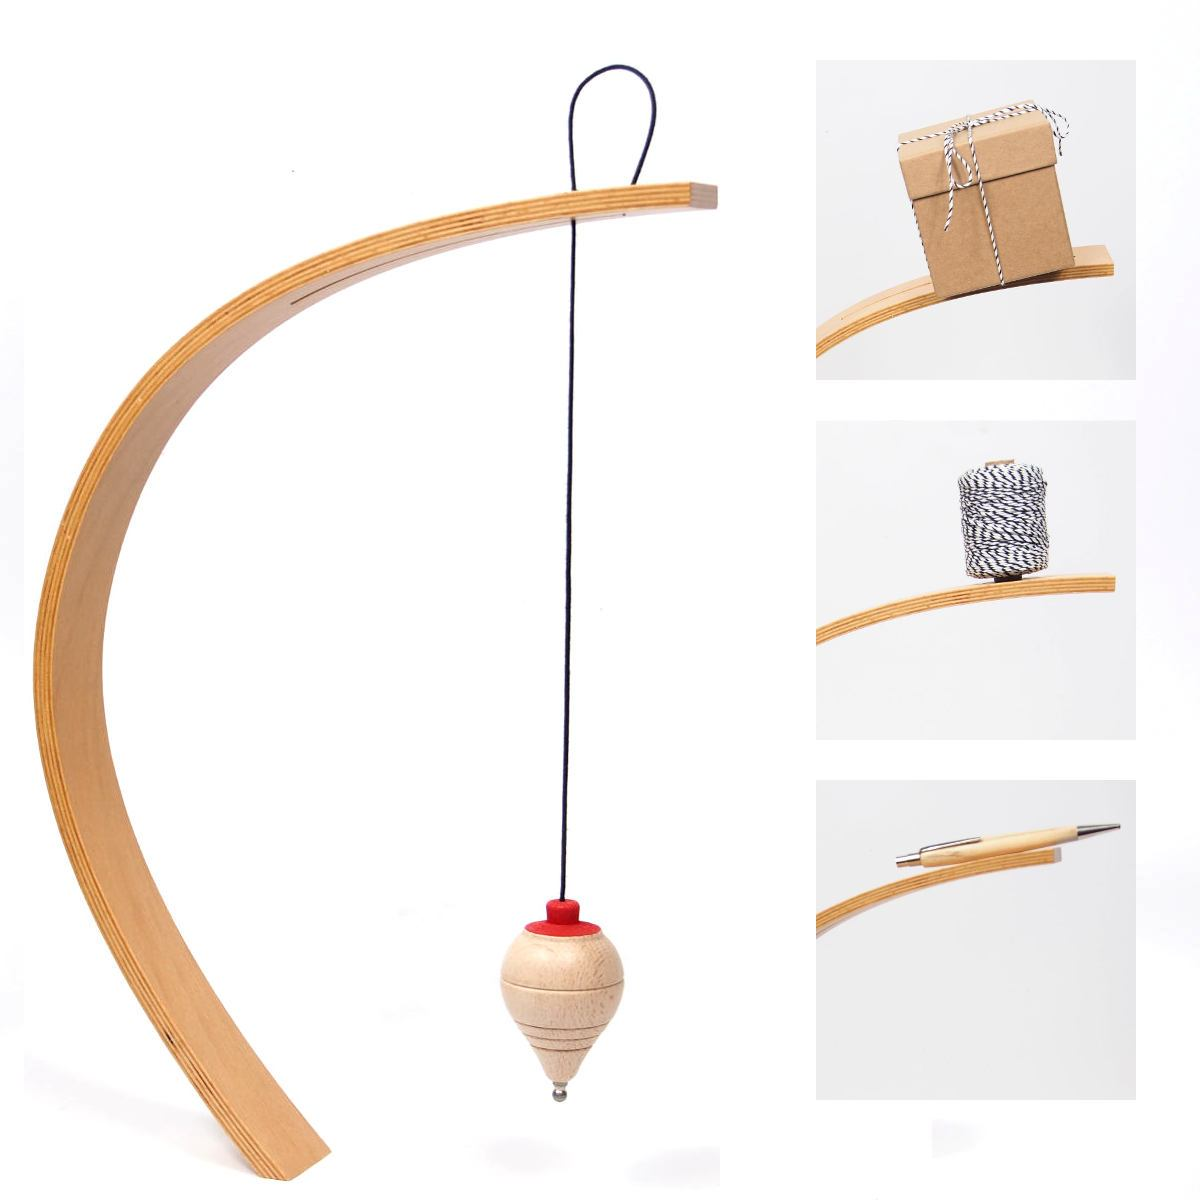 Decorative wooden balancing stand with pendulum